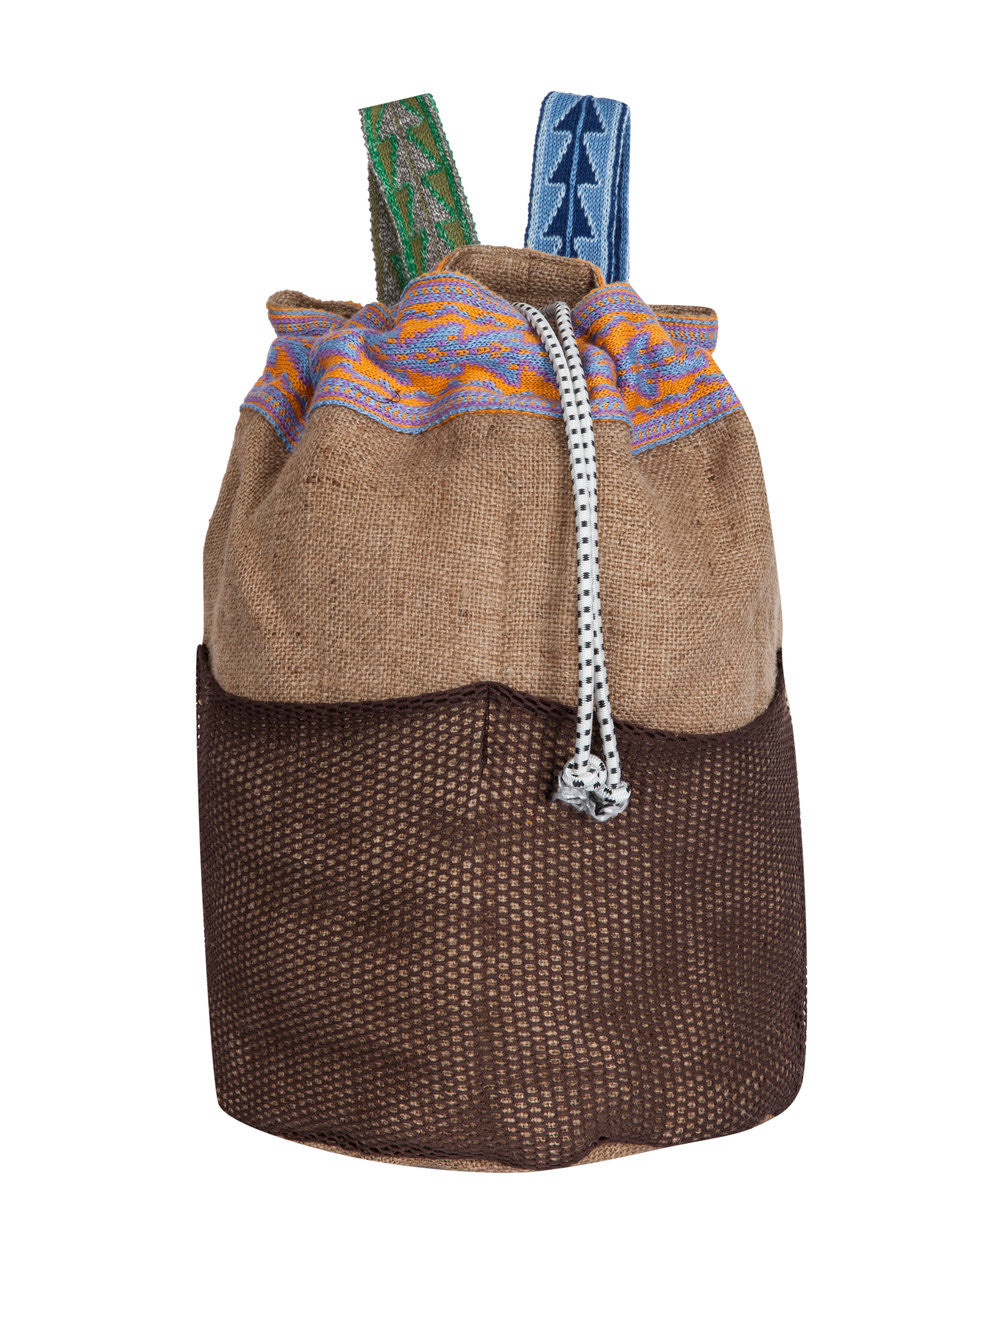 Maram O Recycled Cylinder Bag SOLD OUT